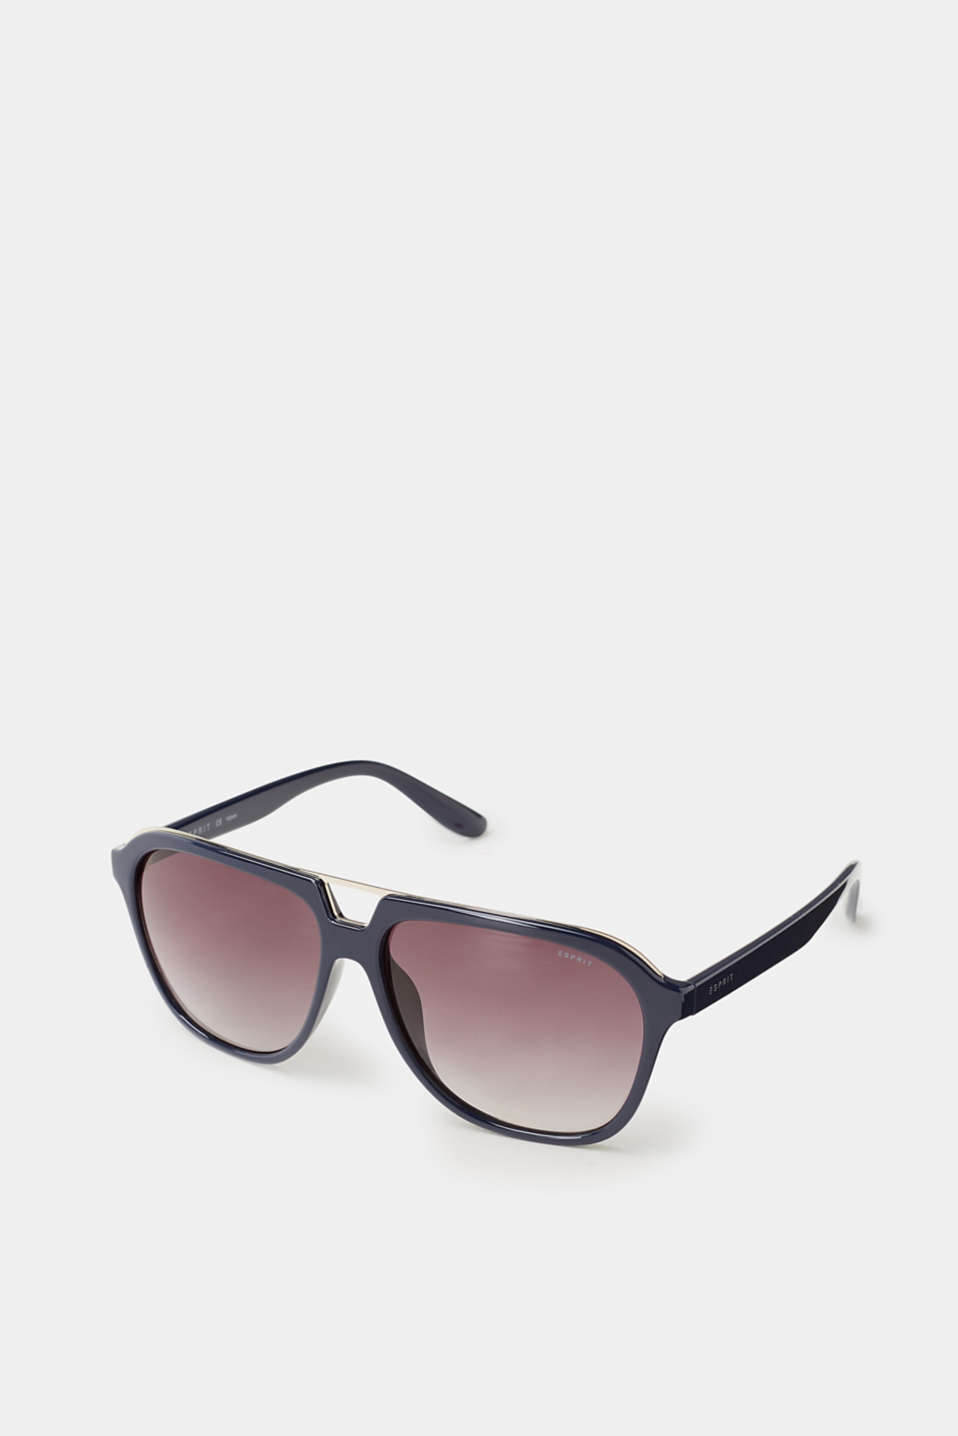 Esprit - Unisex sunglasses with metal detail